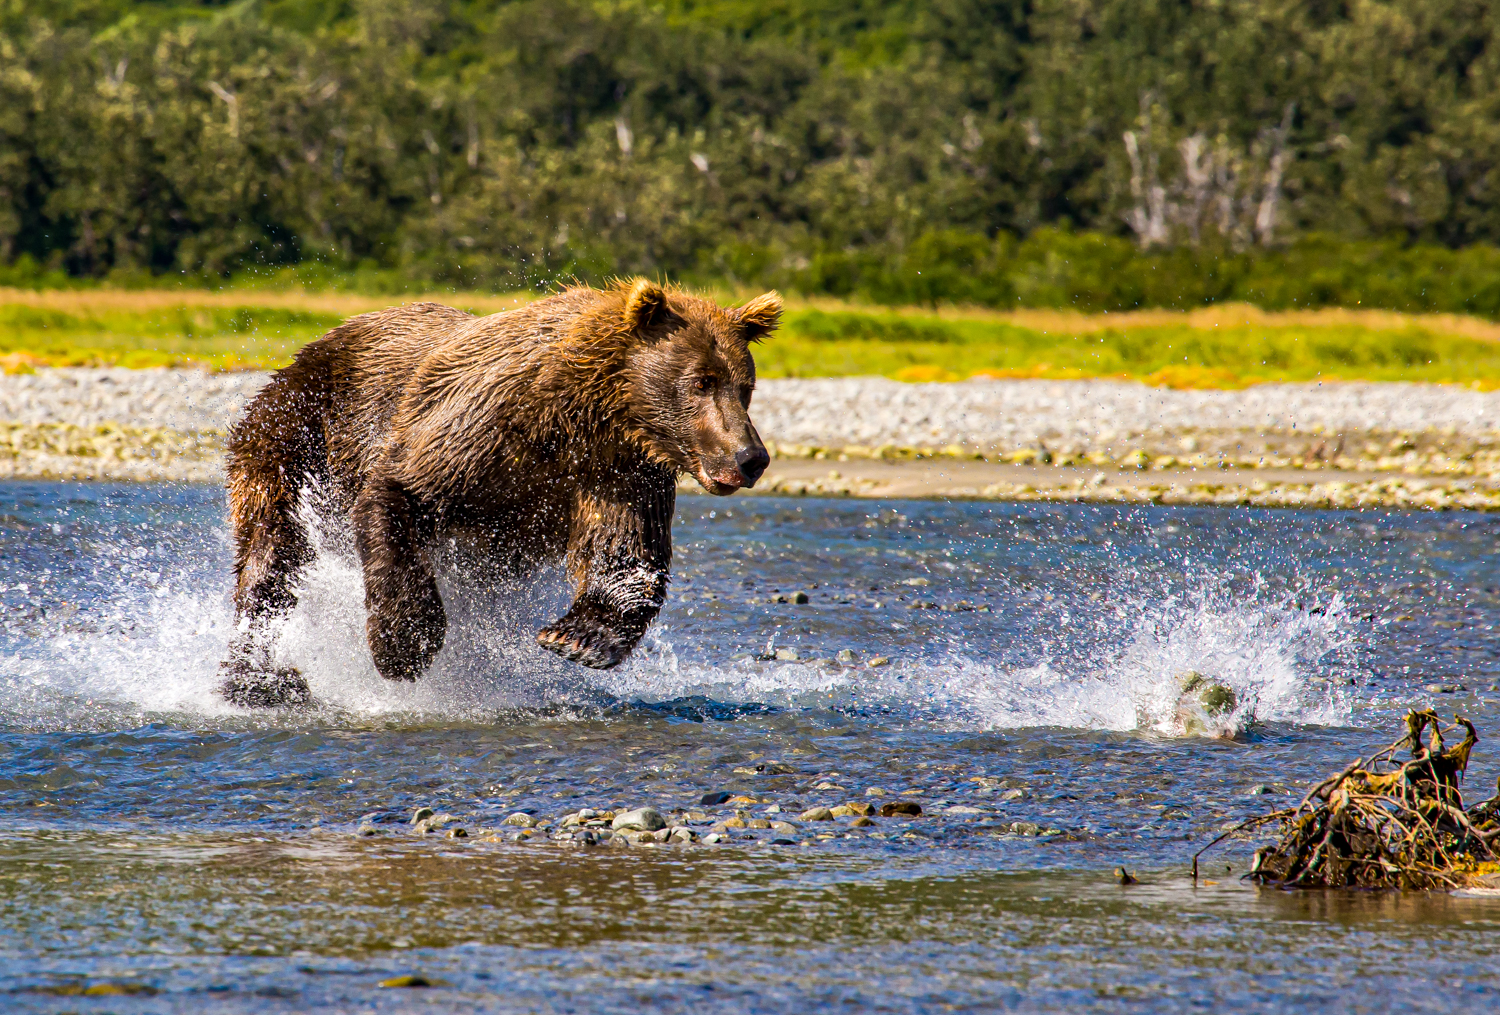 A grizzly brown bear fishing